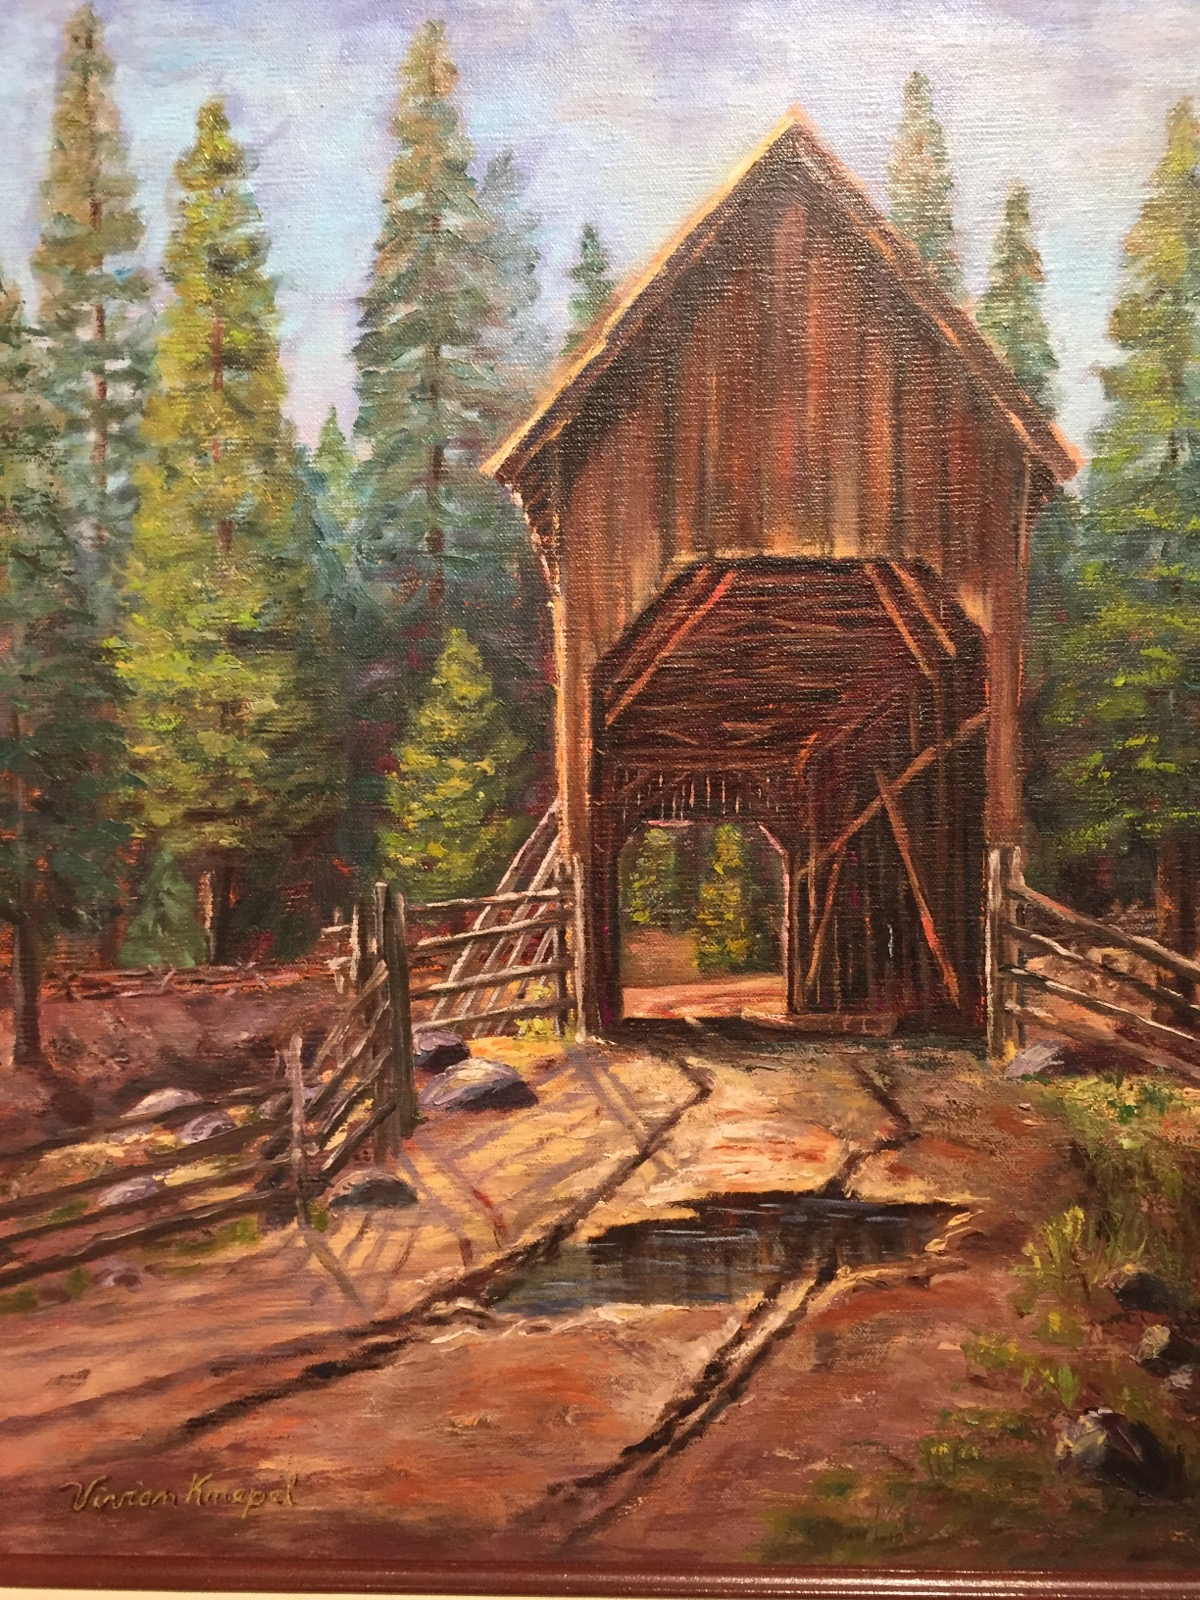 This covered bridge painting that is part of the Originals of Yosemite exhibition is from Vivian Knepel. She was well-known for paintings of a variety of scenes from Yosemite.